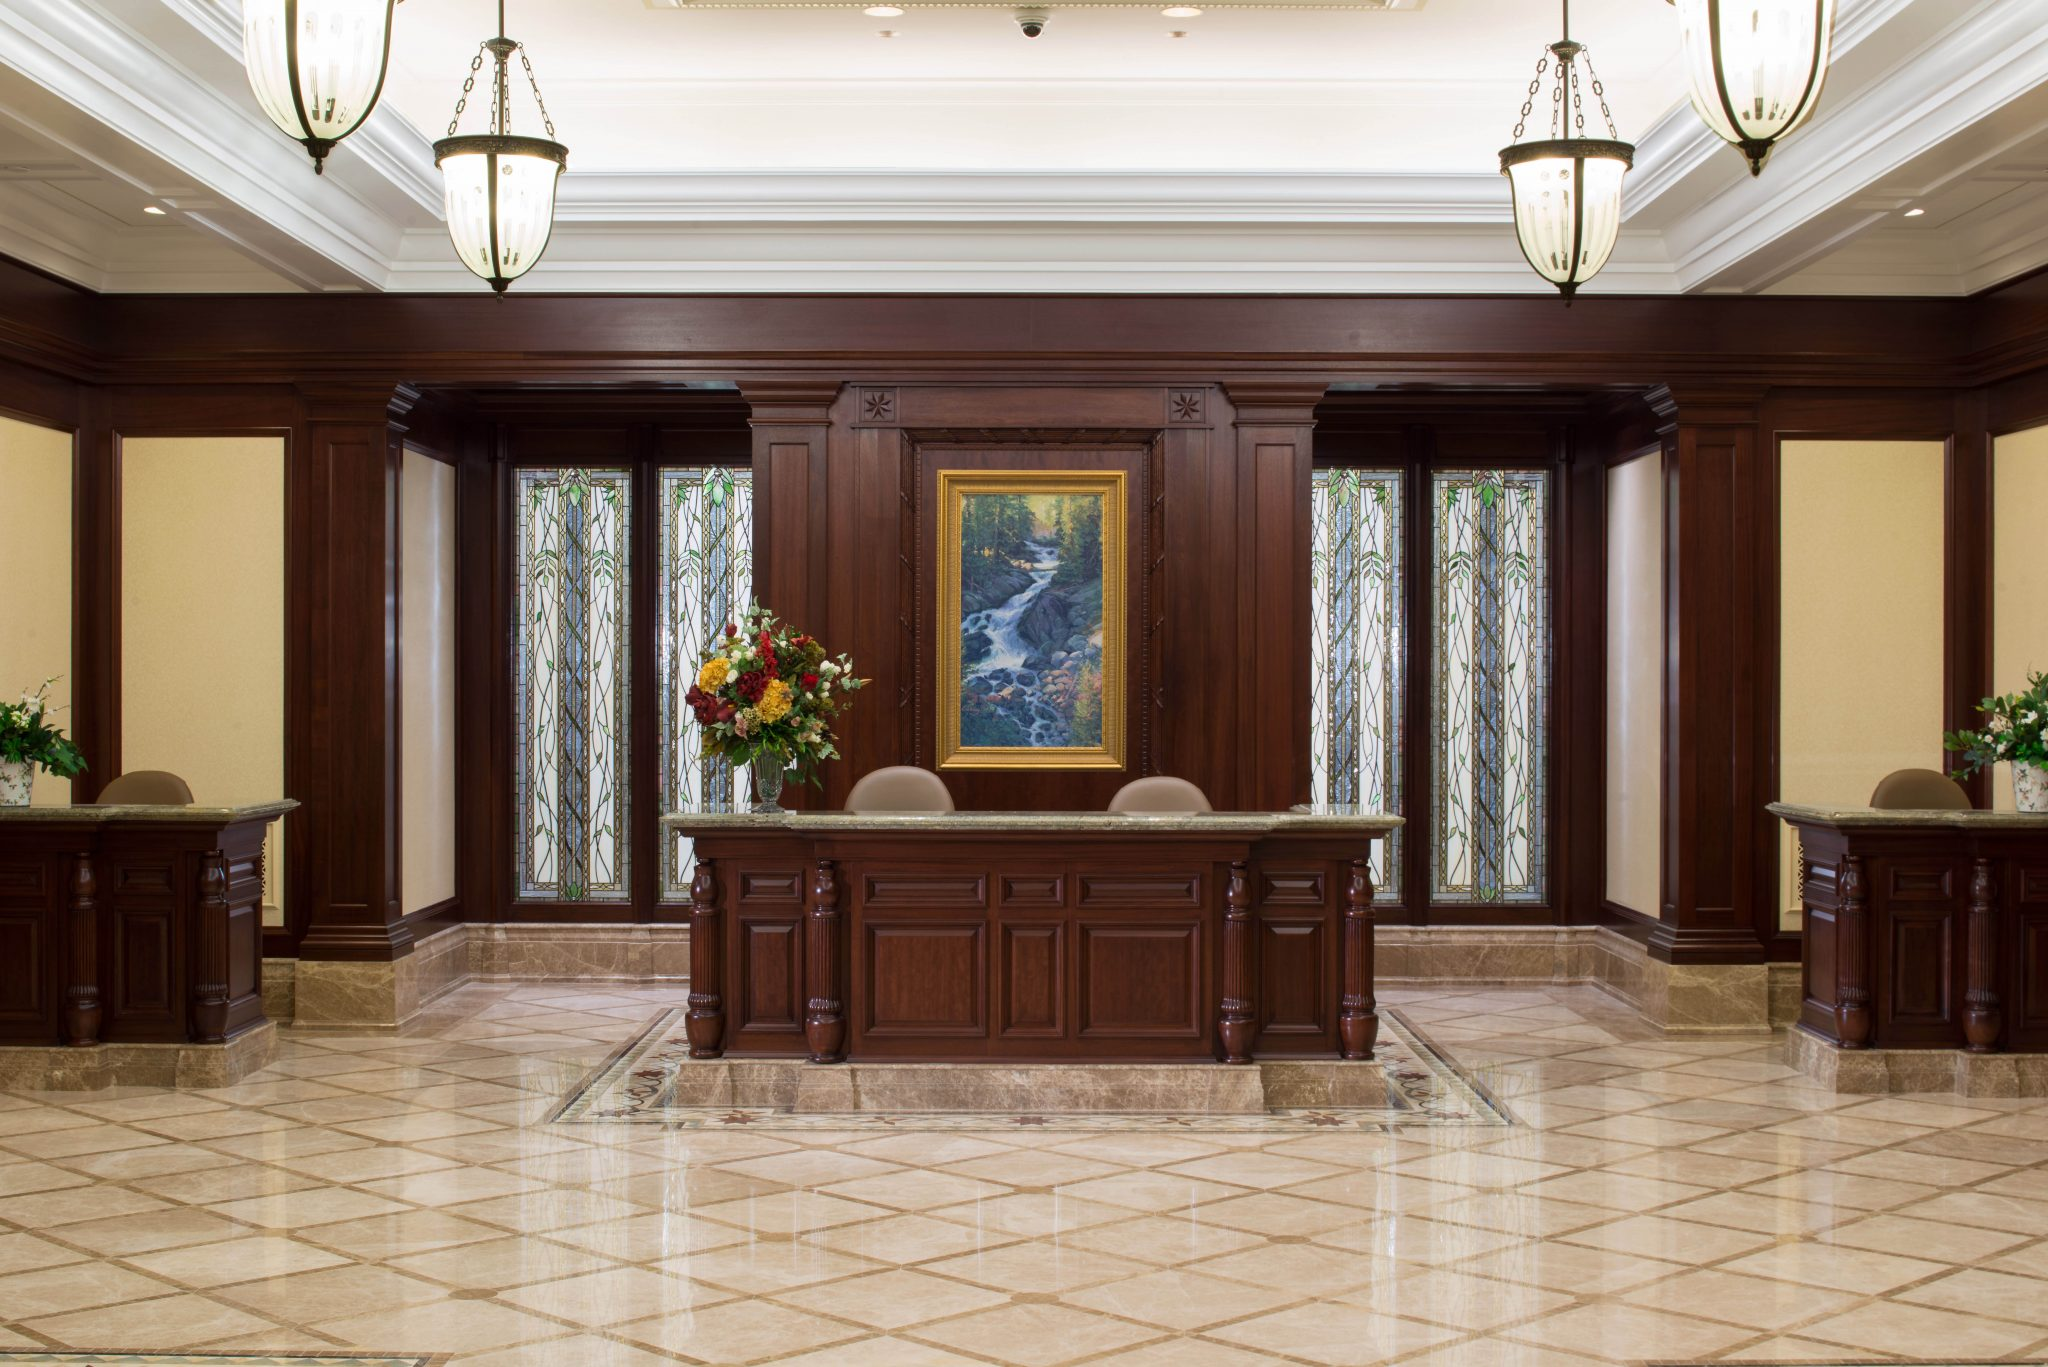 Photos first look inside the payson utah temple lds daily for Temple inside home designs